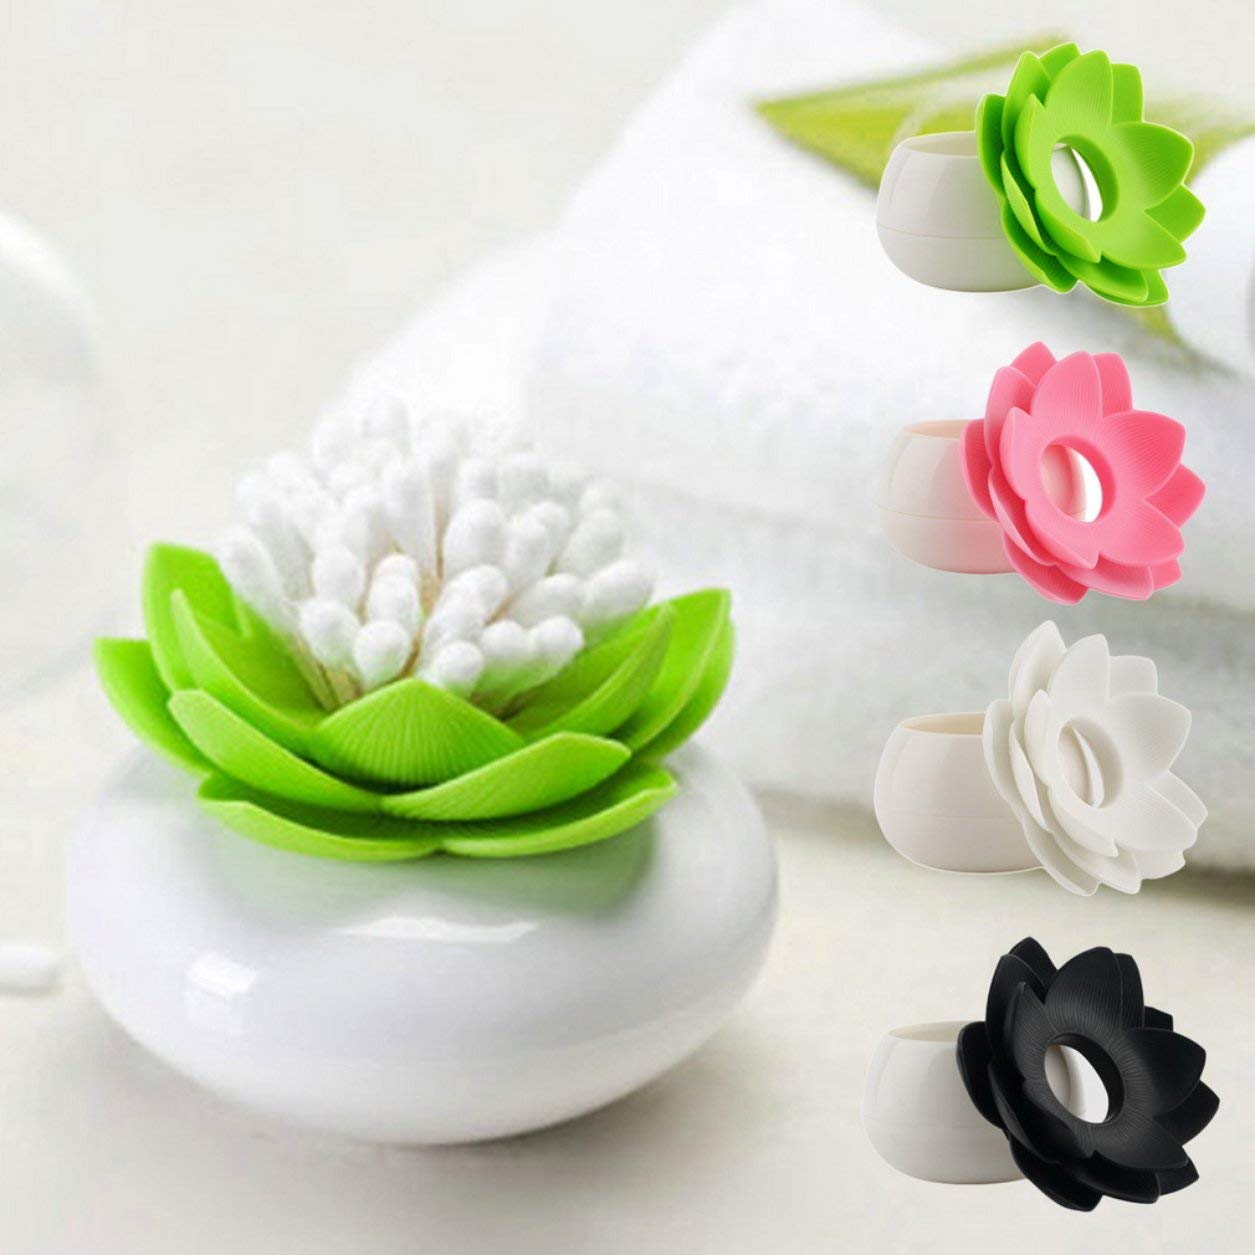 Dailyinshop Nouveau Lot de Coton-Tige Lotus Lotus Coton Bourgeon Salle de Base décorer/Lotus Porte-Cure-Dents étui à Dents